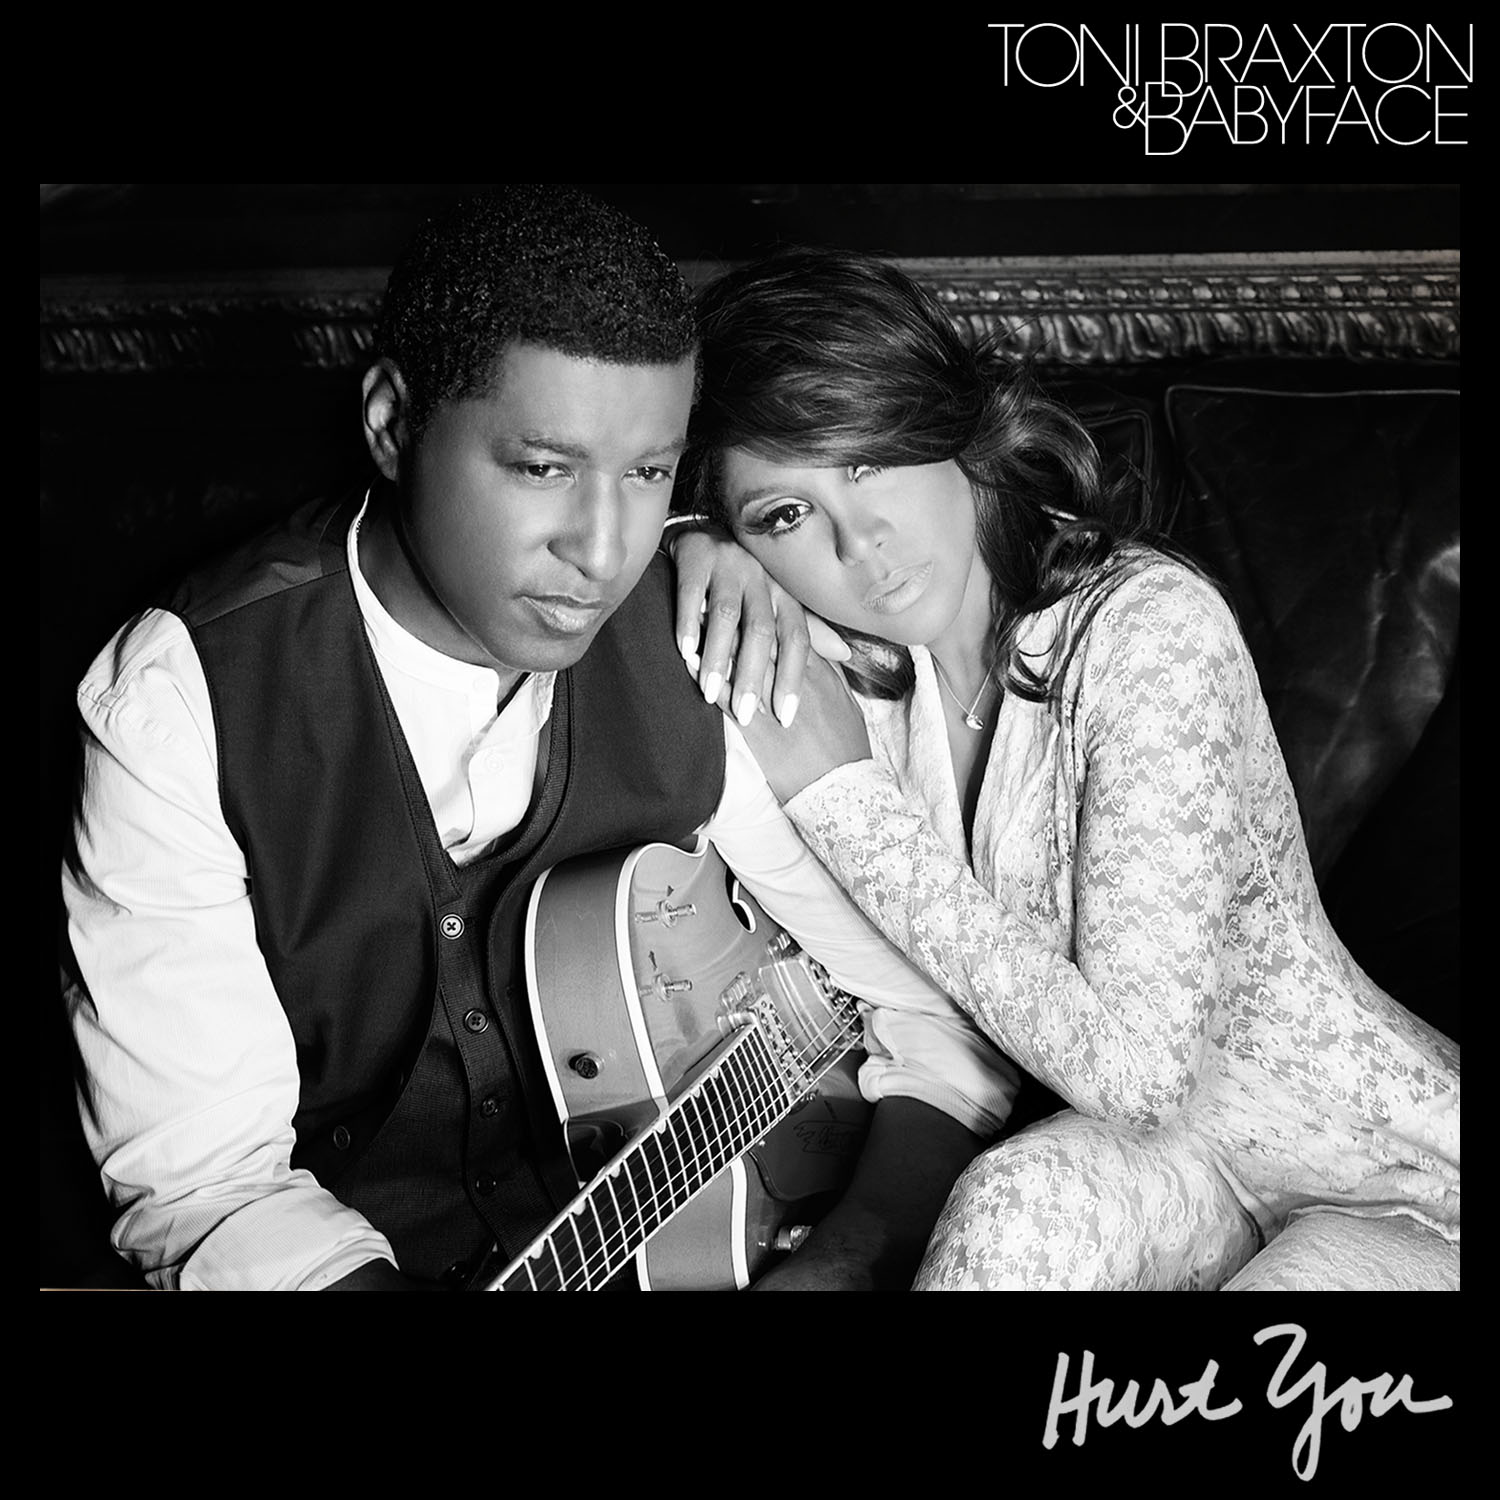 Babyface-Toni-Braxton-Hurt-You